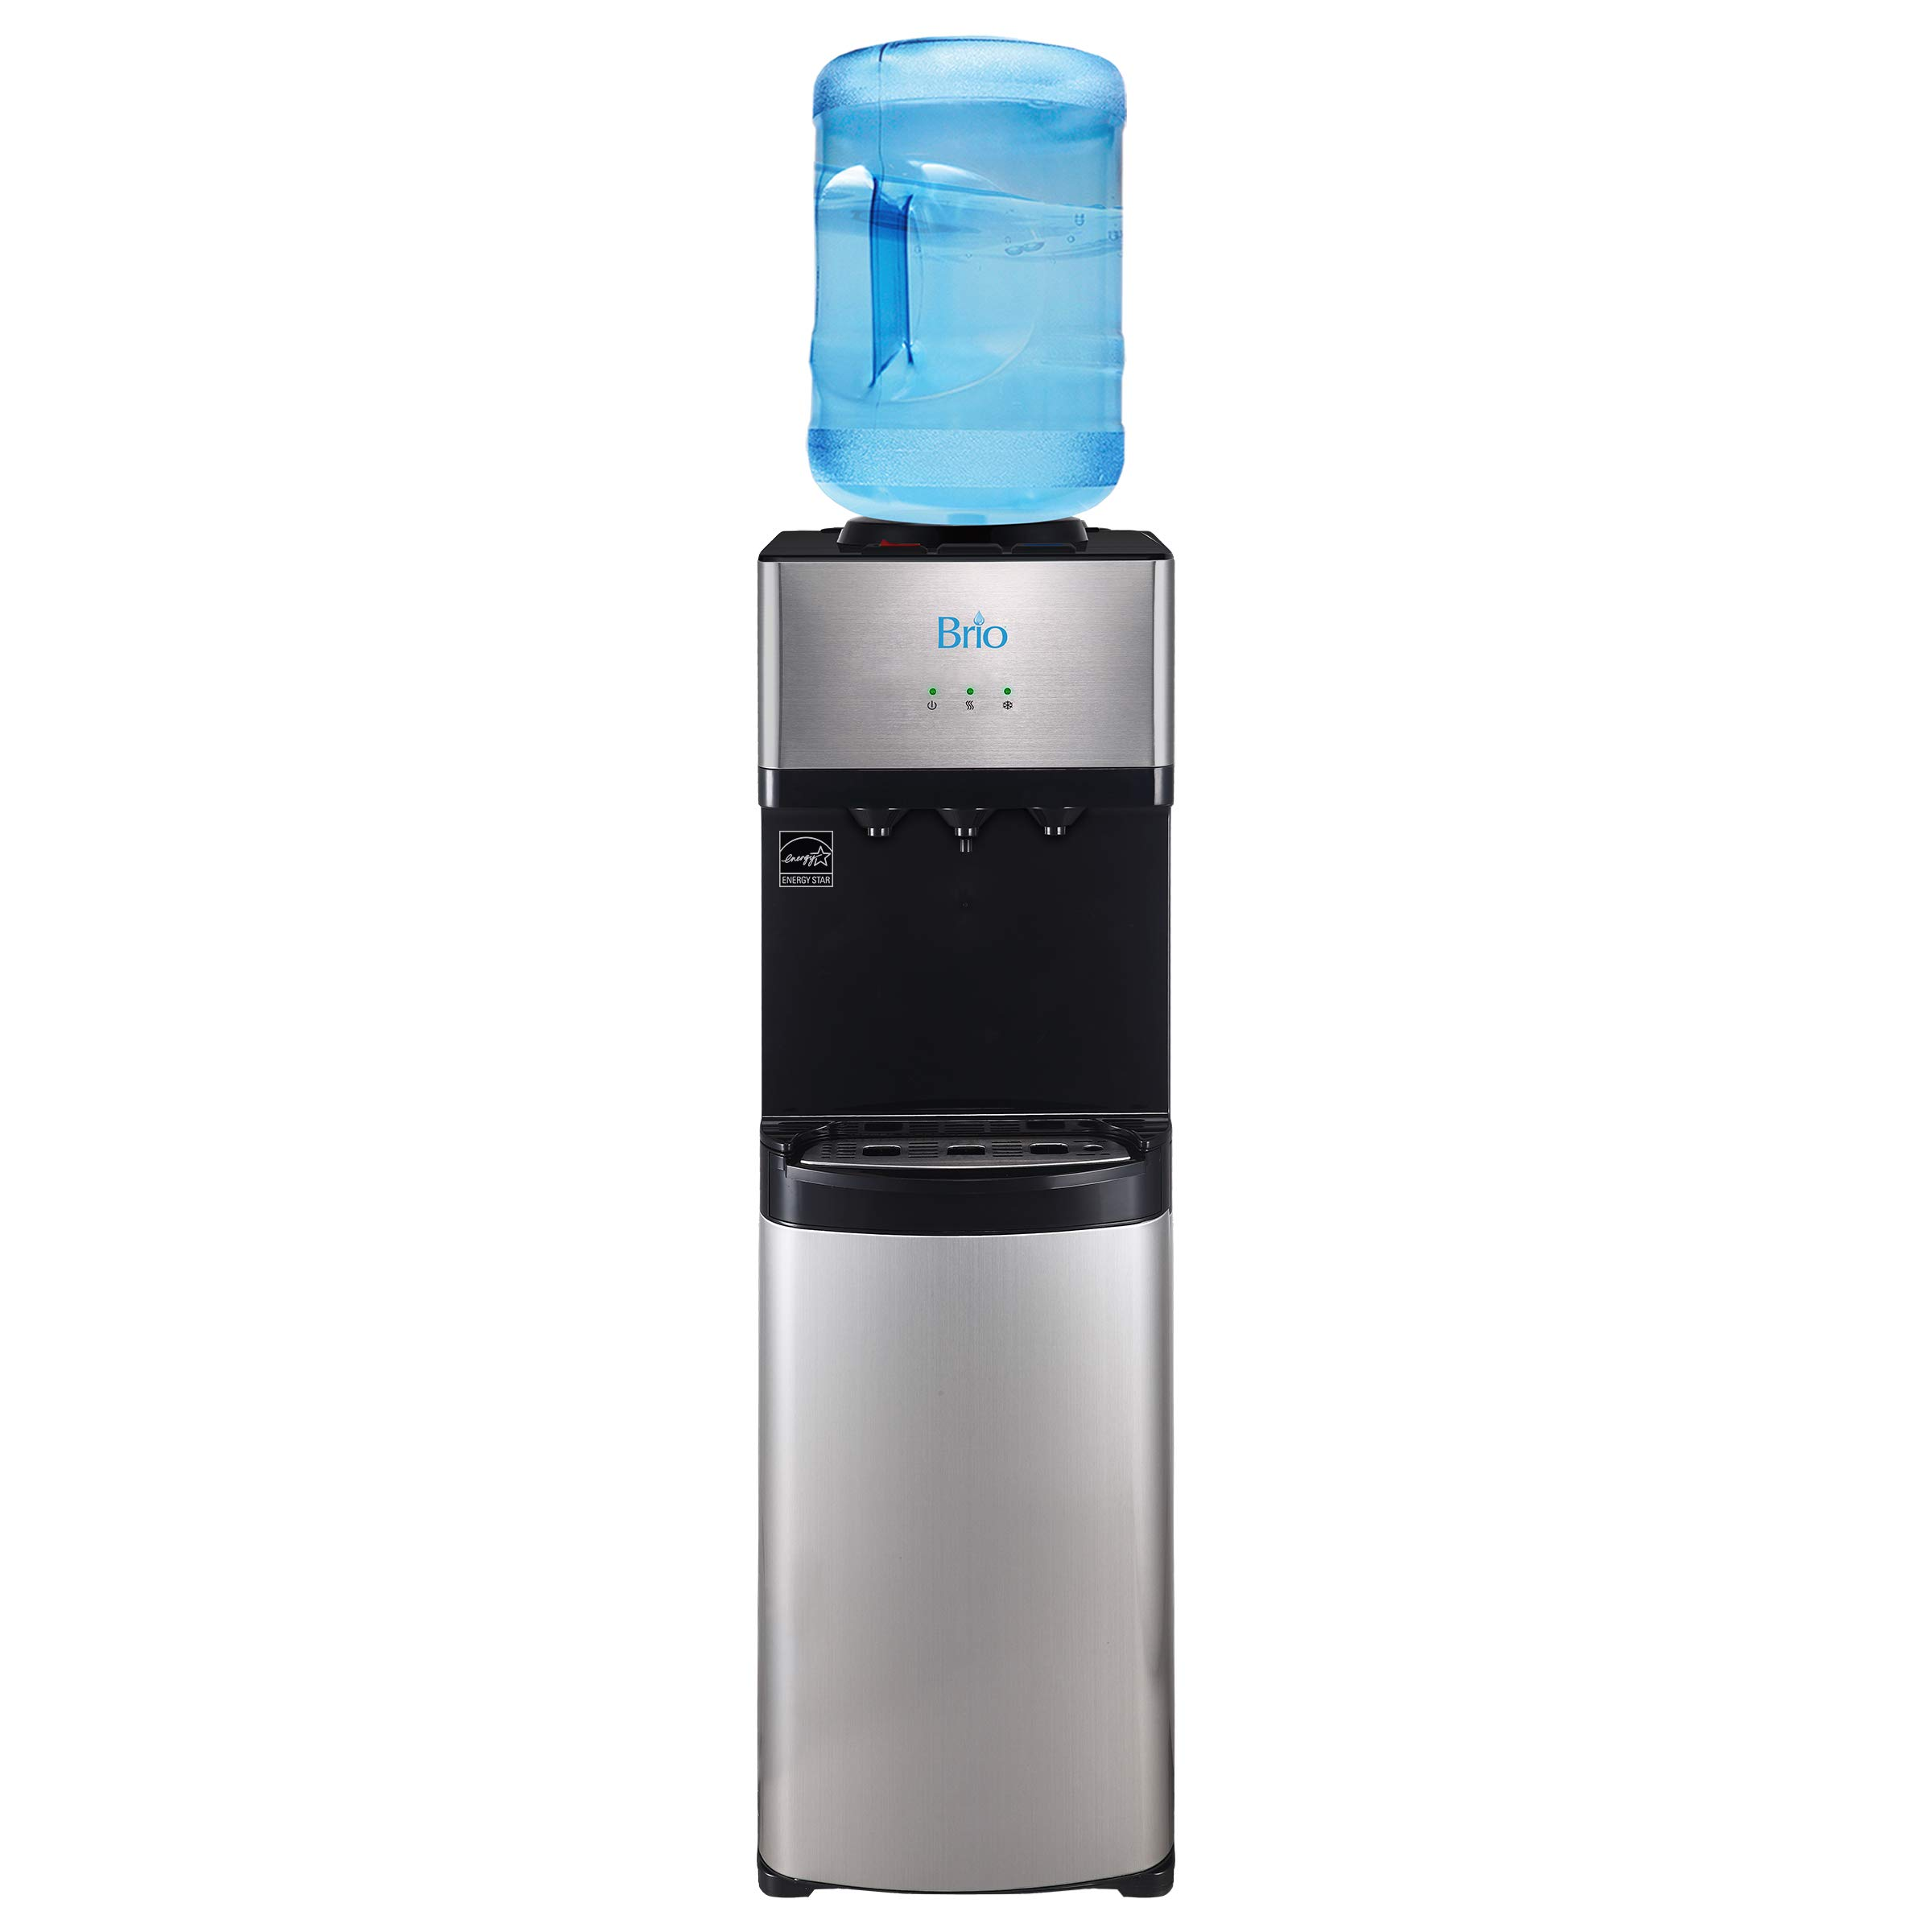 Brio Limited Edition Top Loading Water Cooler Dispenser - Hot & Cold Water, Child Safety Lock, Holds 3 or 5 Gallon Bottles - UL/Energy Star Approved by Brio